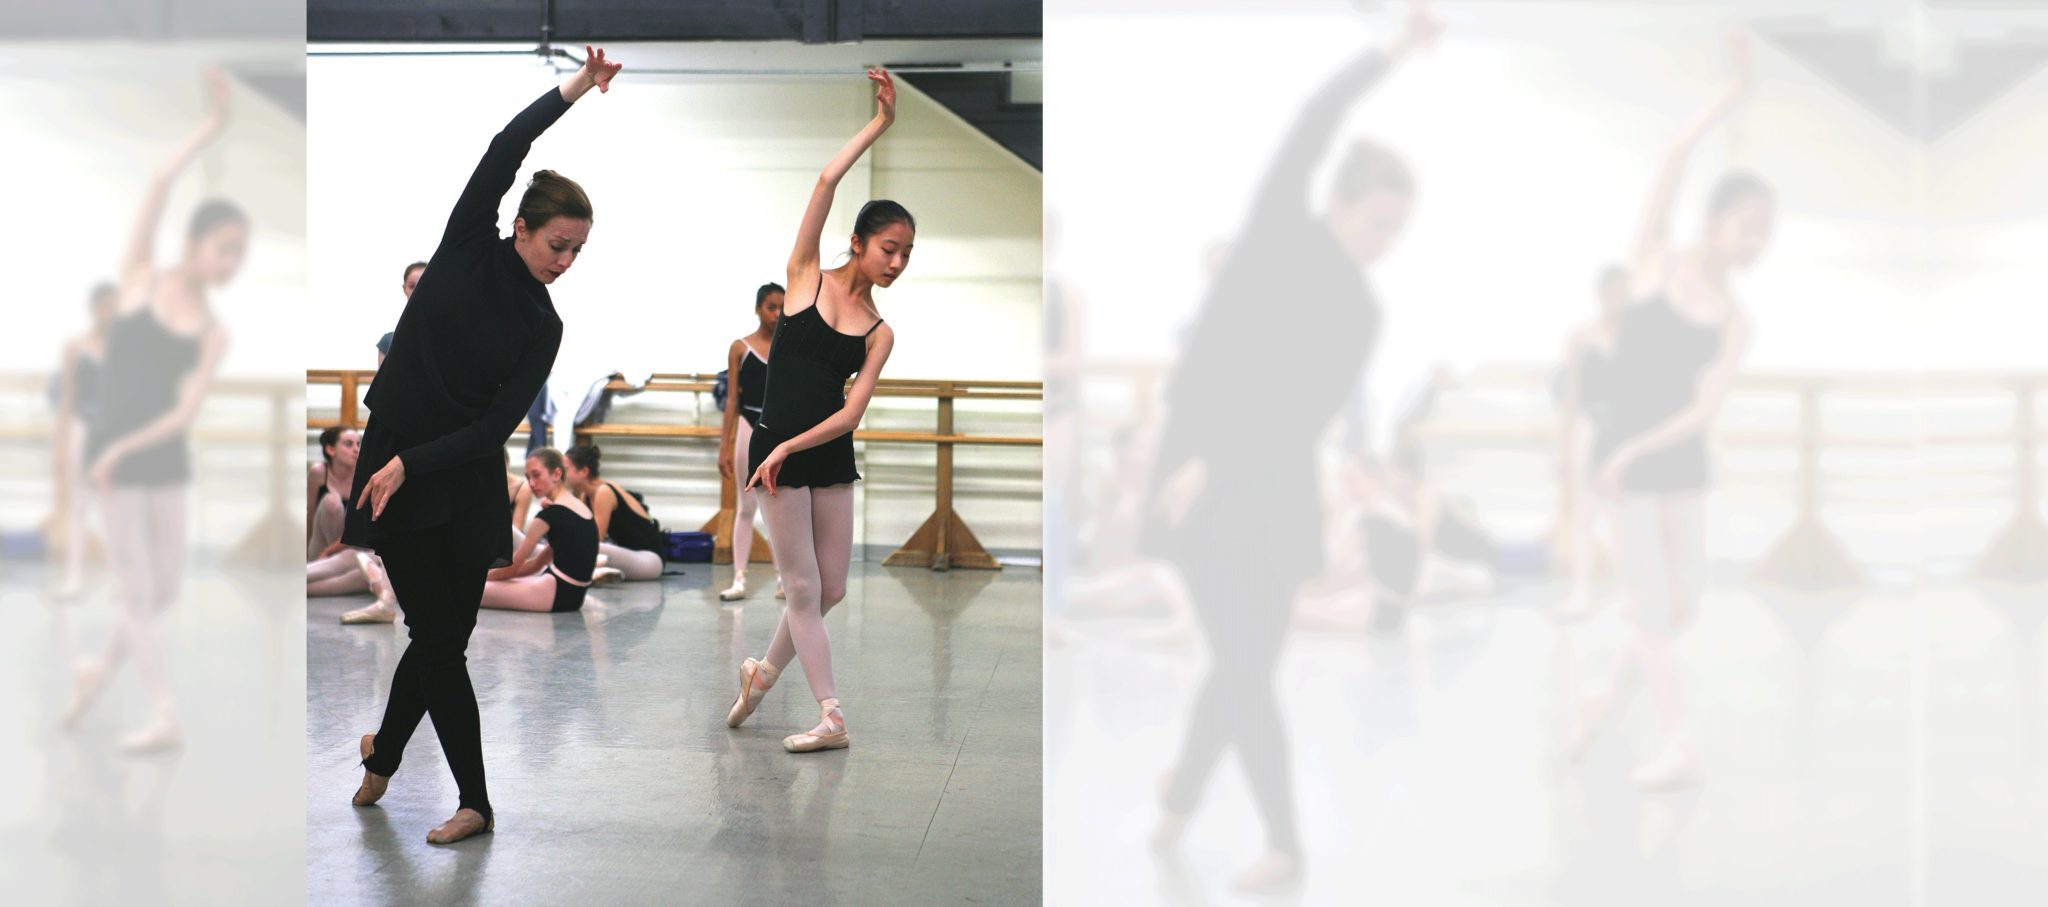 Westside Ballet Training In Classical Ballet For All Ages And Levels Westside Ballet Of Santa Monica